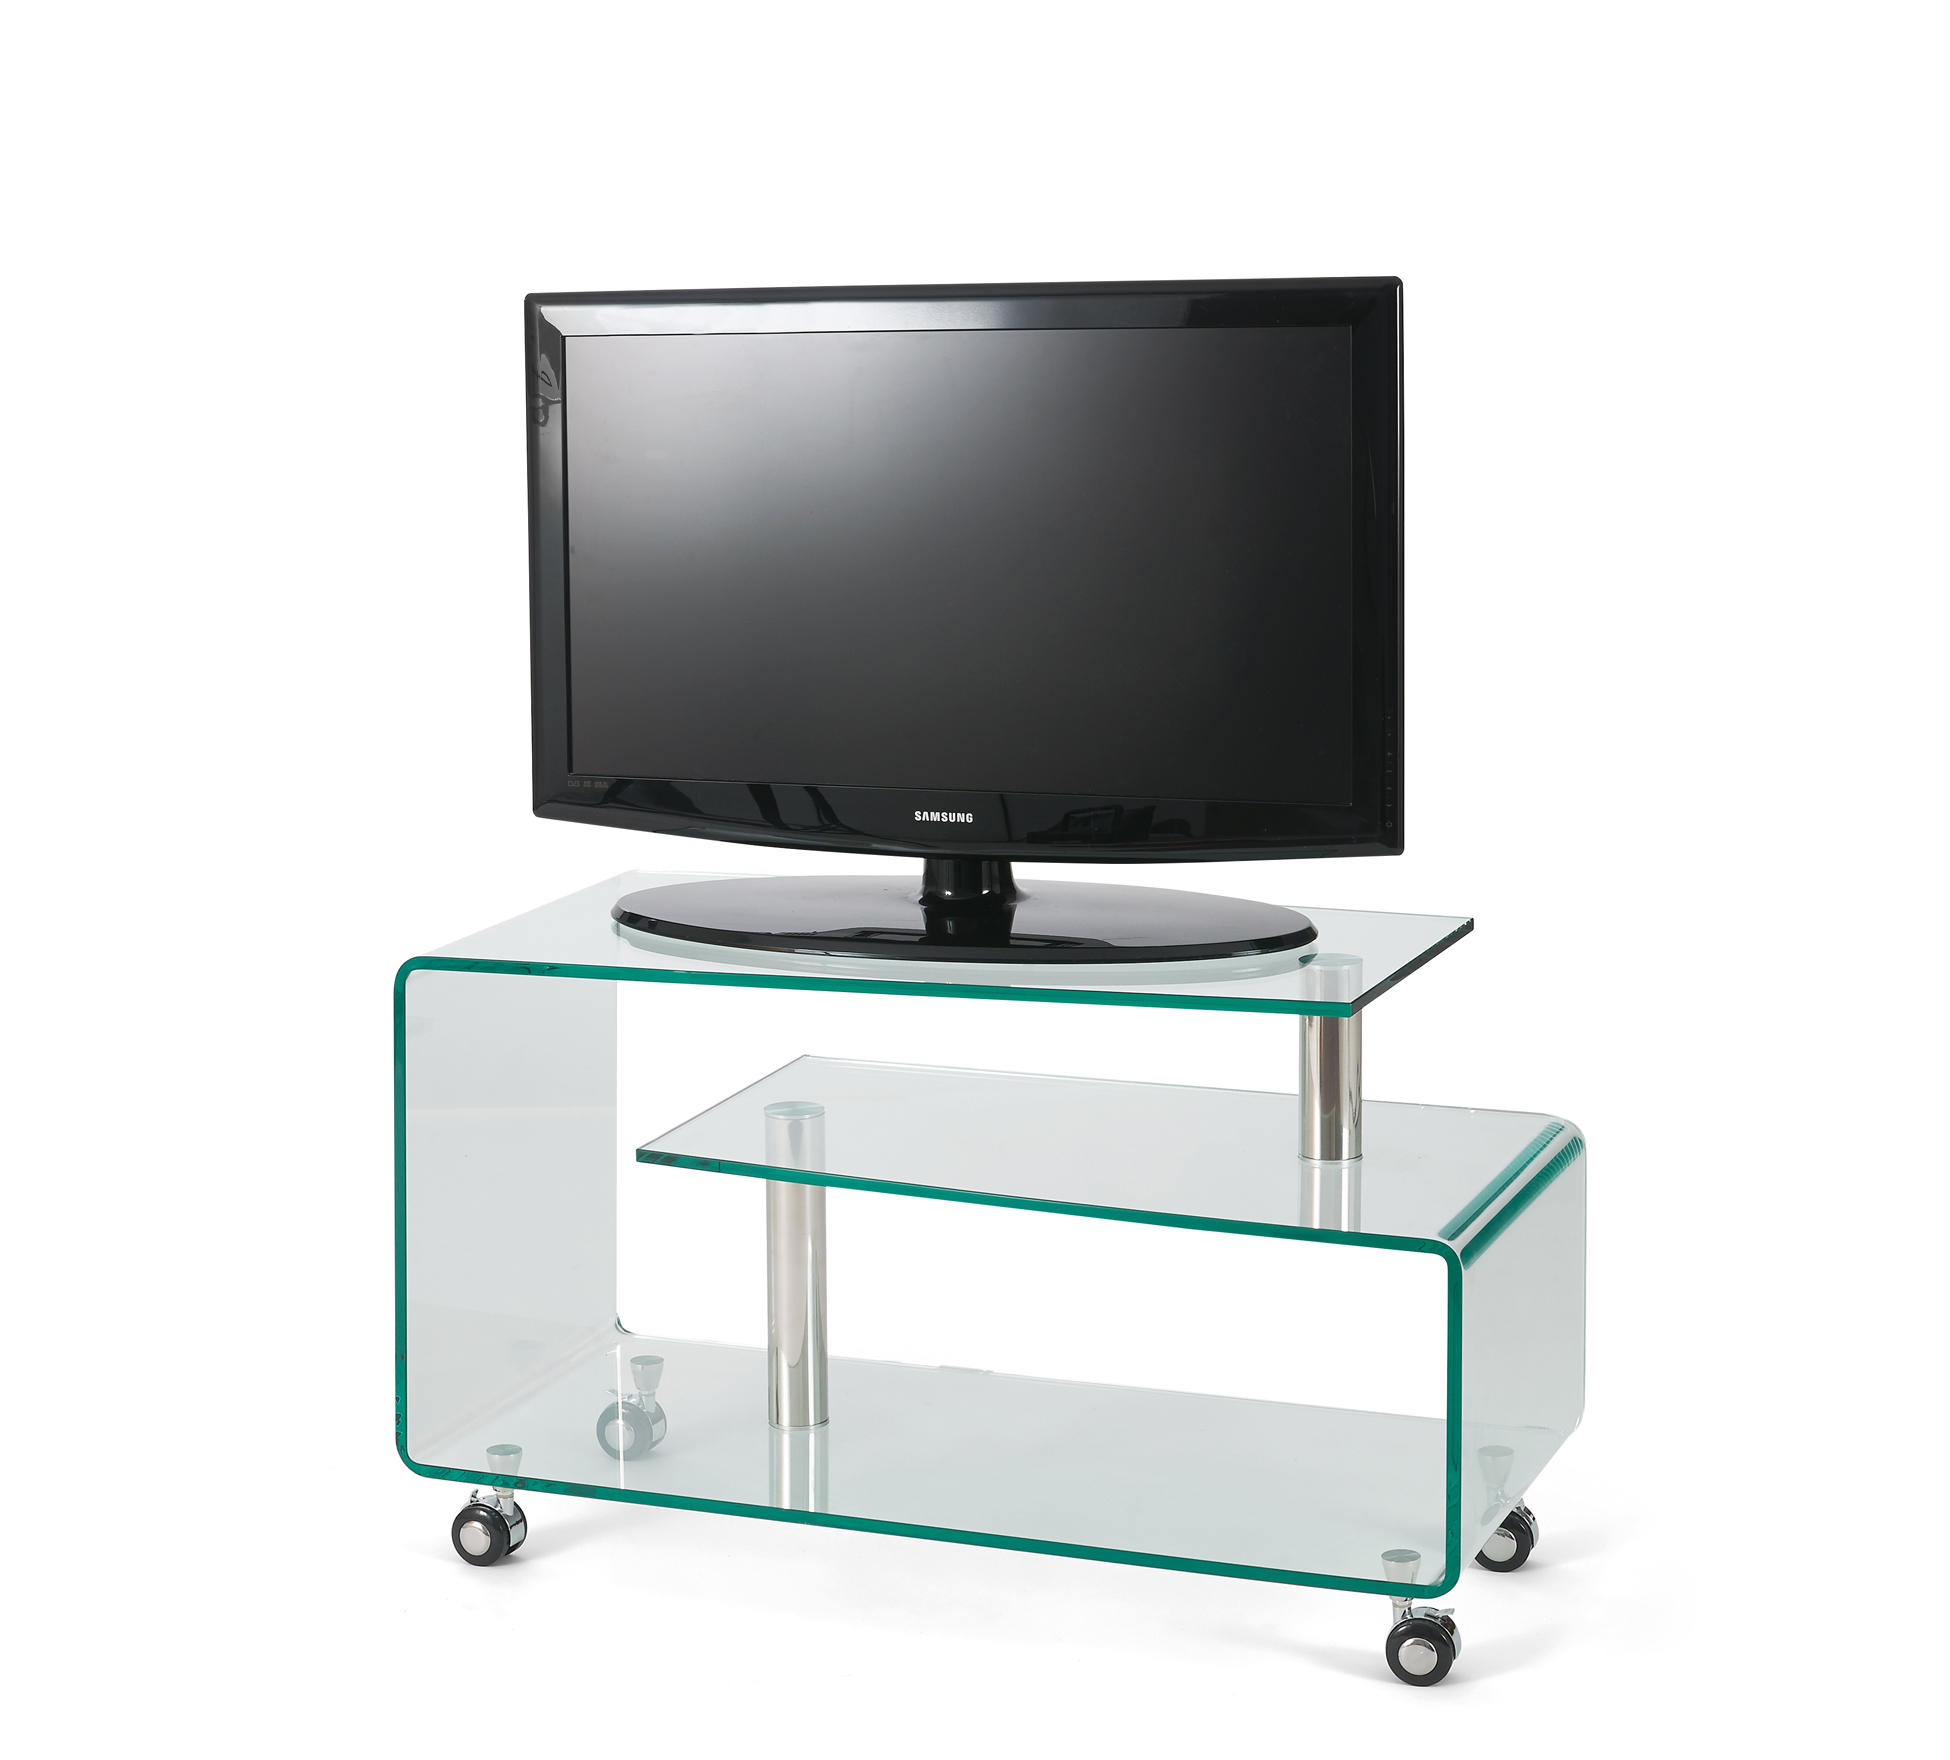 Meuble Tv En Verre But Interesting Meuble Tv Space Verre Noir  # Meuble Tv A Roulettes But